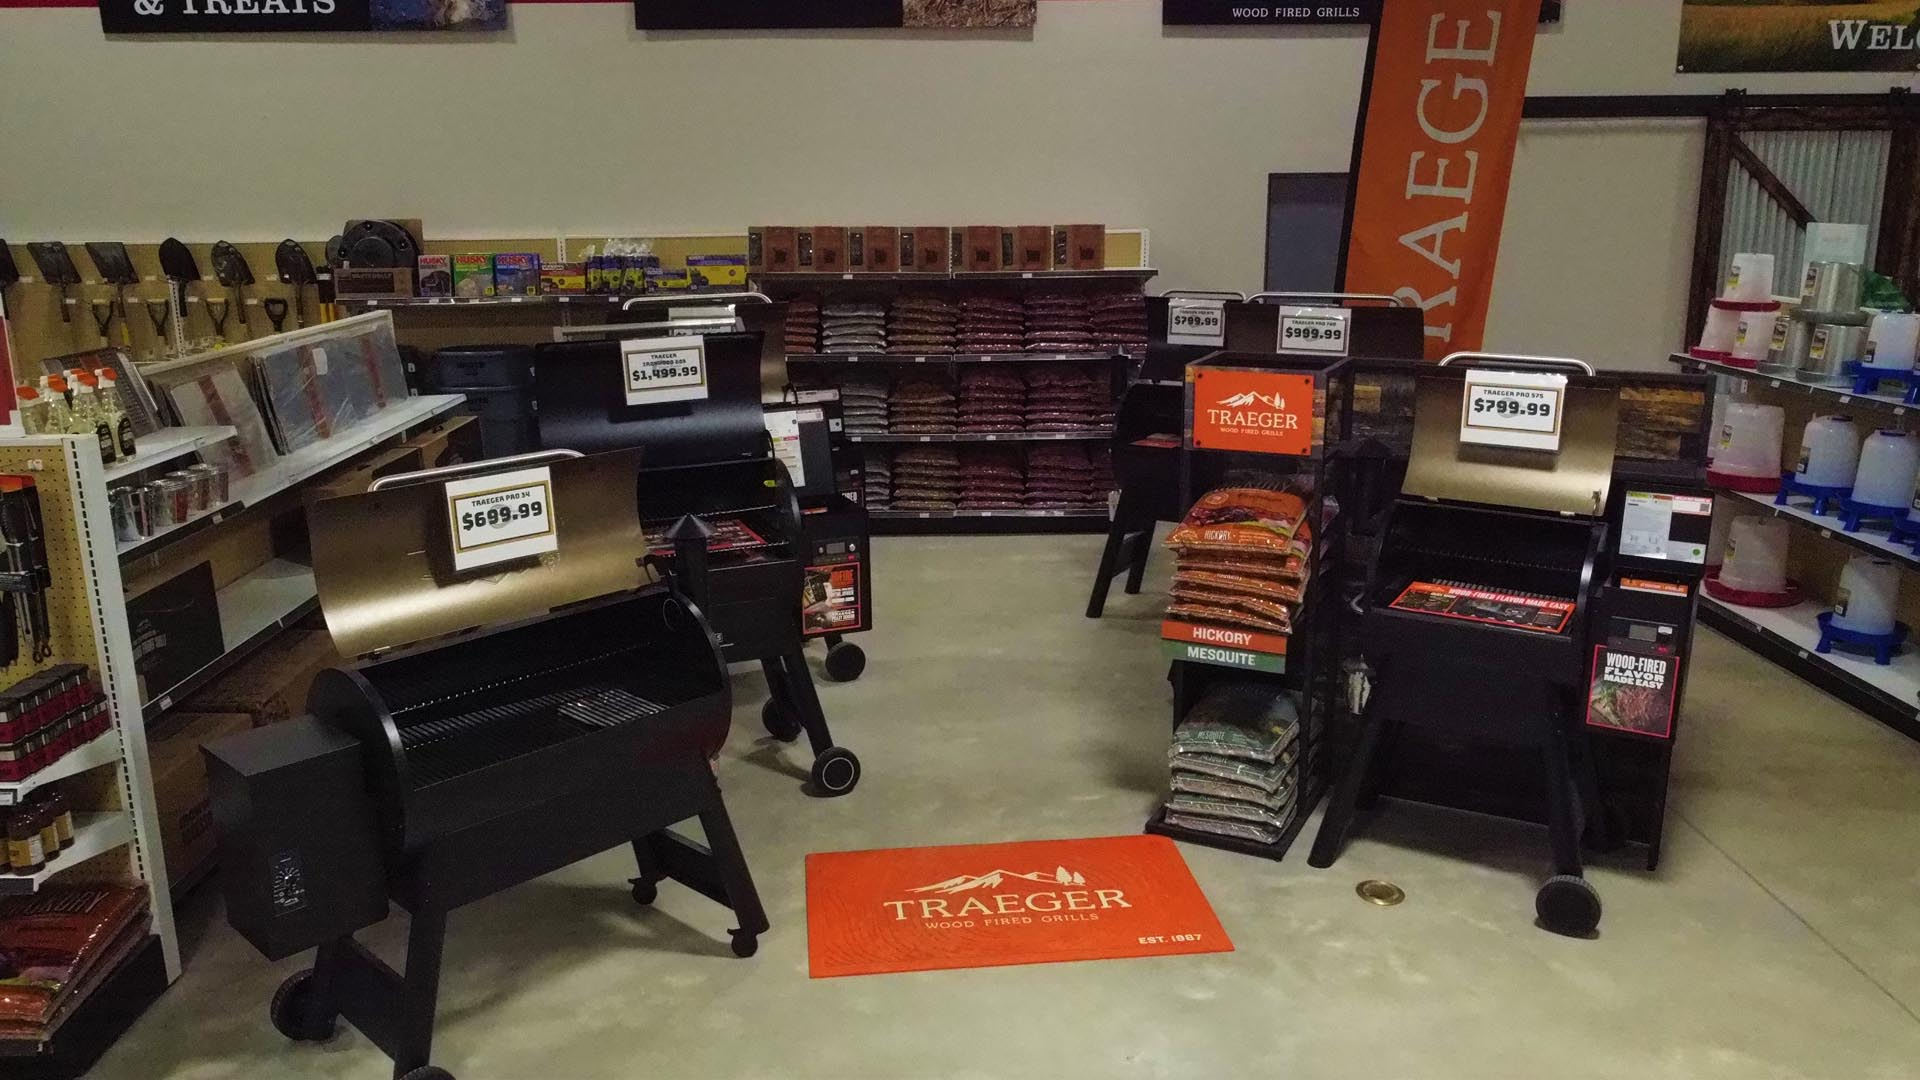 Traeger Grills at the Norman location